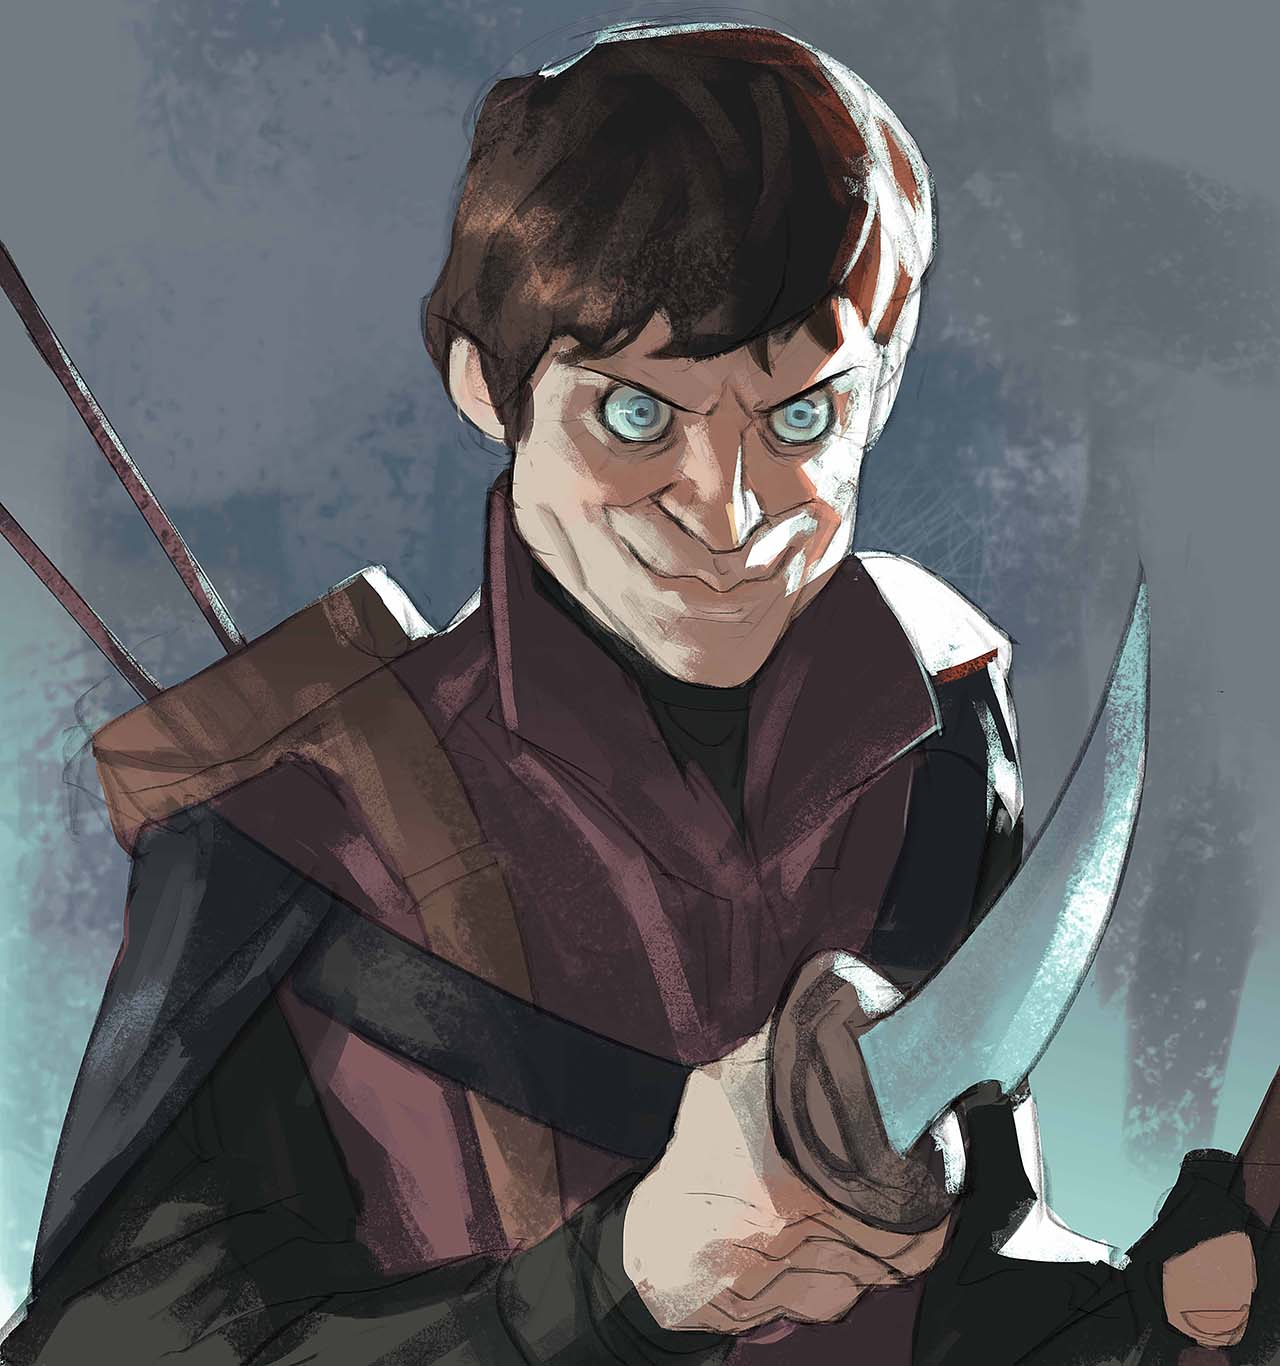 Artist Creates Unique Character Arts From Game Of Thrones – Ramsay Bolton Character Art By Ramón Nuñez